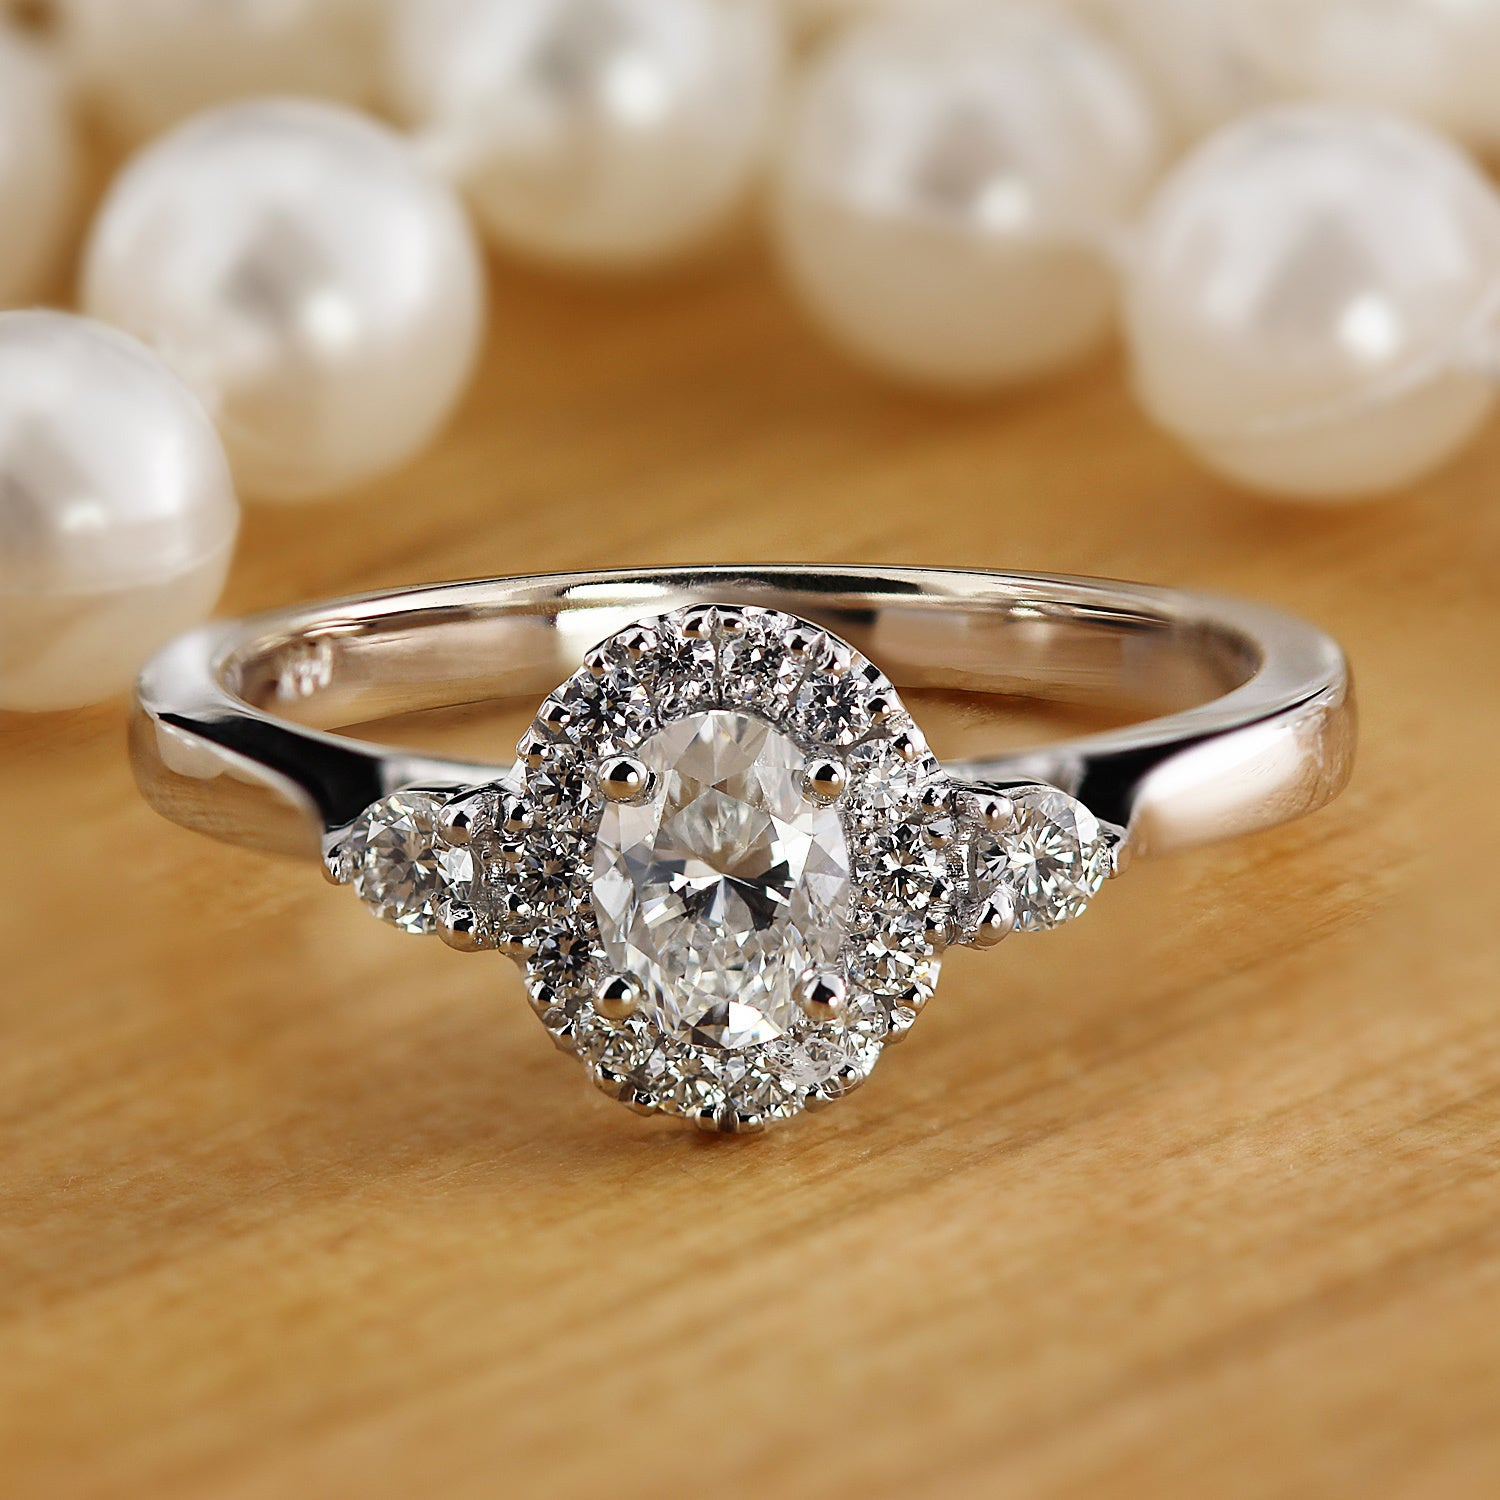 Oval Cut Diamond Rings for Engagement 102